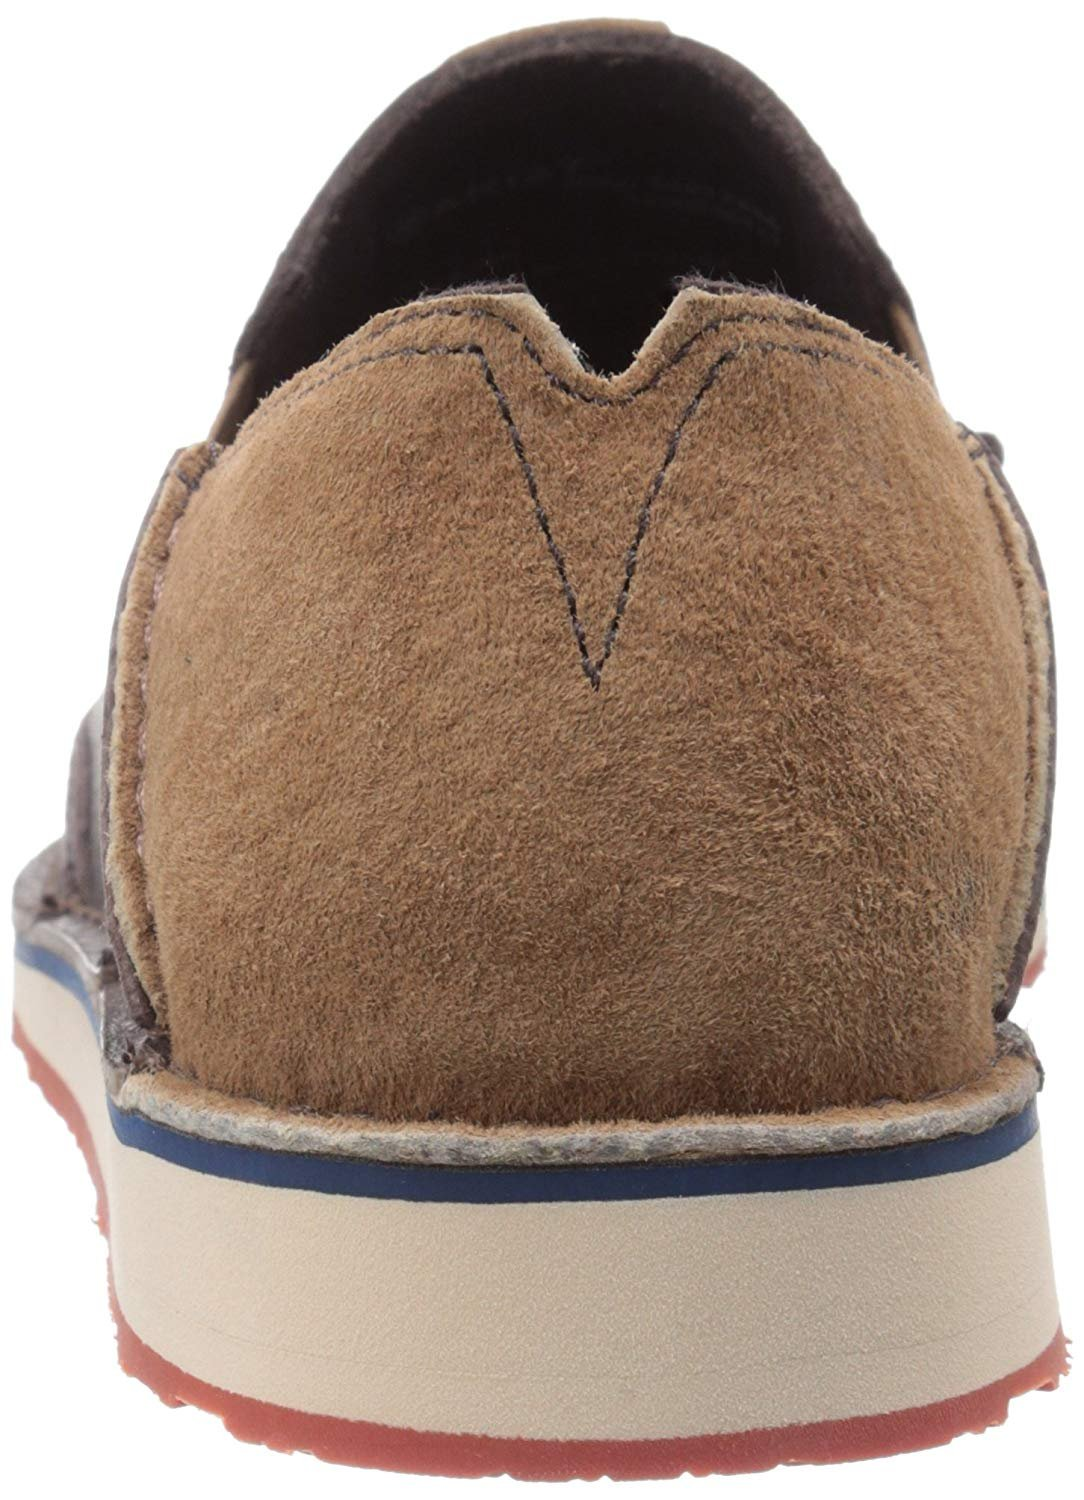 Ariat Men's Cruiser Casual Shoes Affordable and personalized shoes